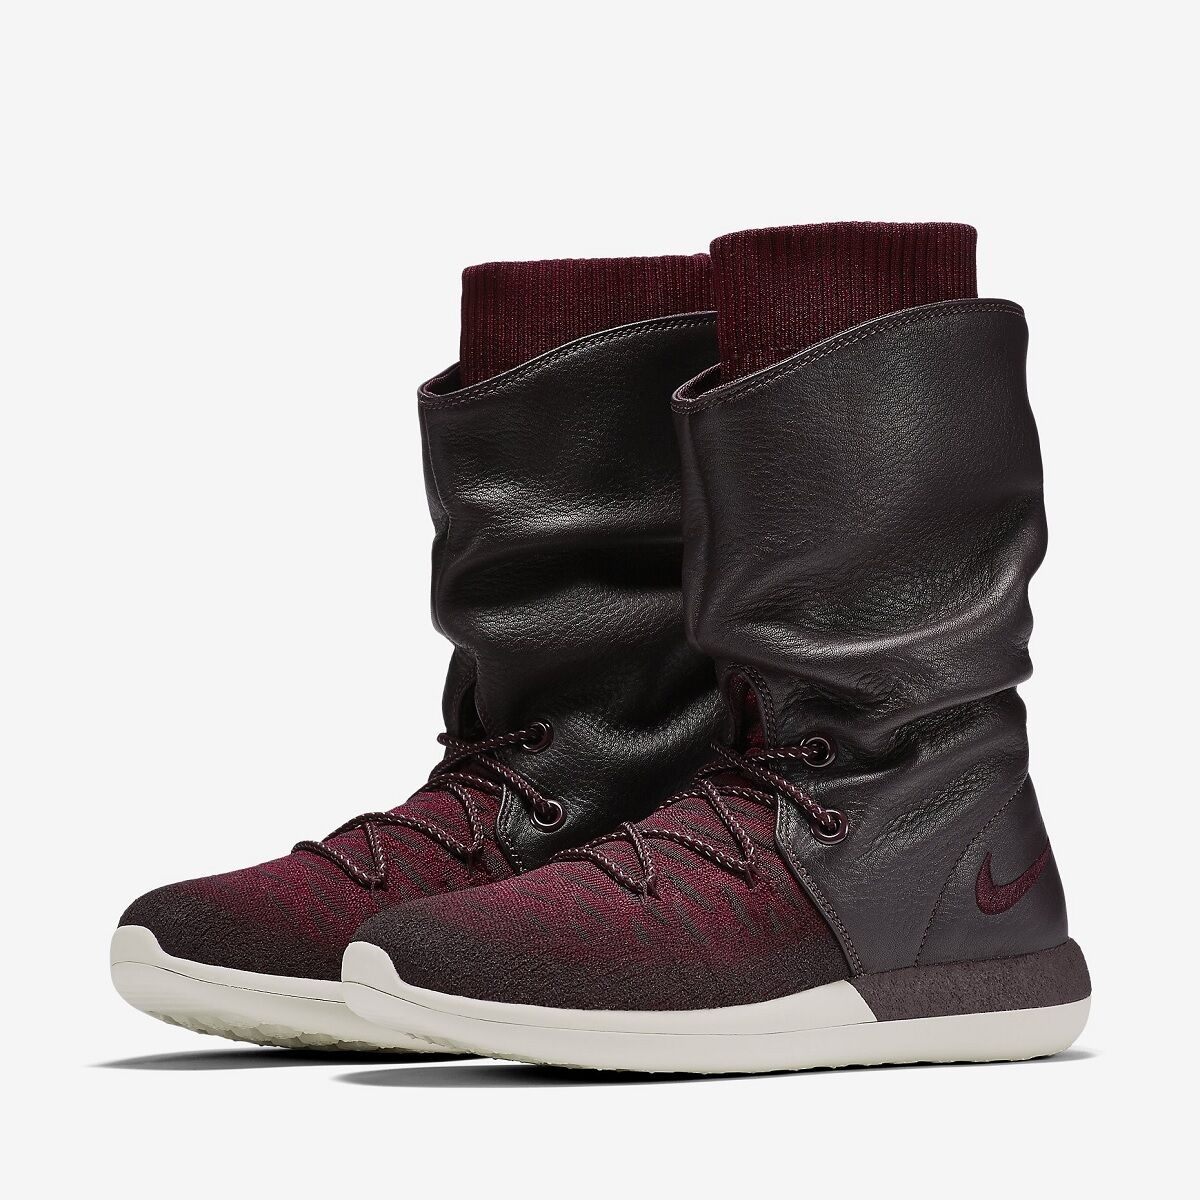 Nike ROSHE 2 Flyknit Calf Boots shoes BURGUNDY RED WHITE 861708 600 Woman Size 7